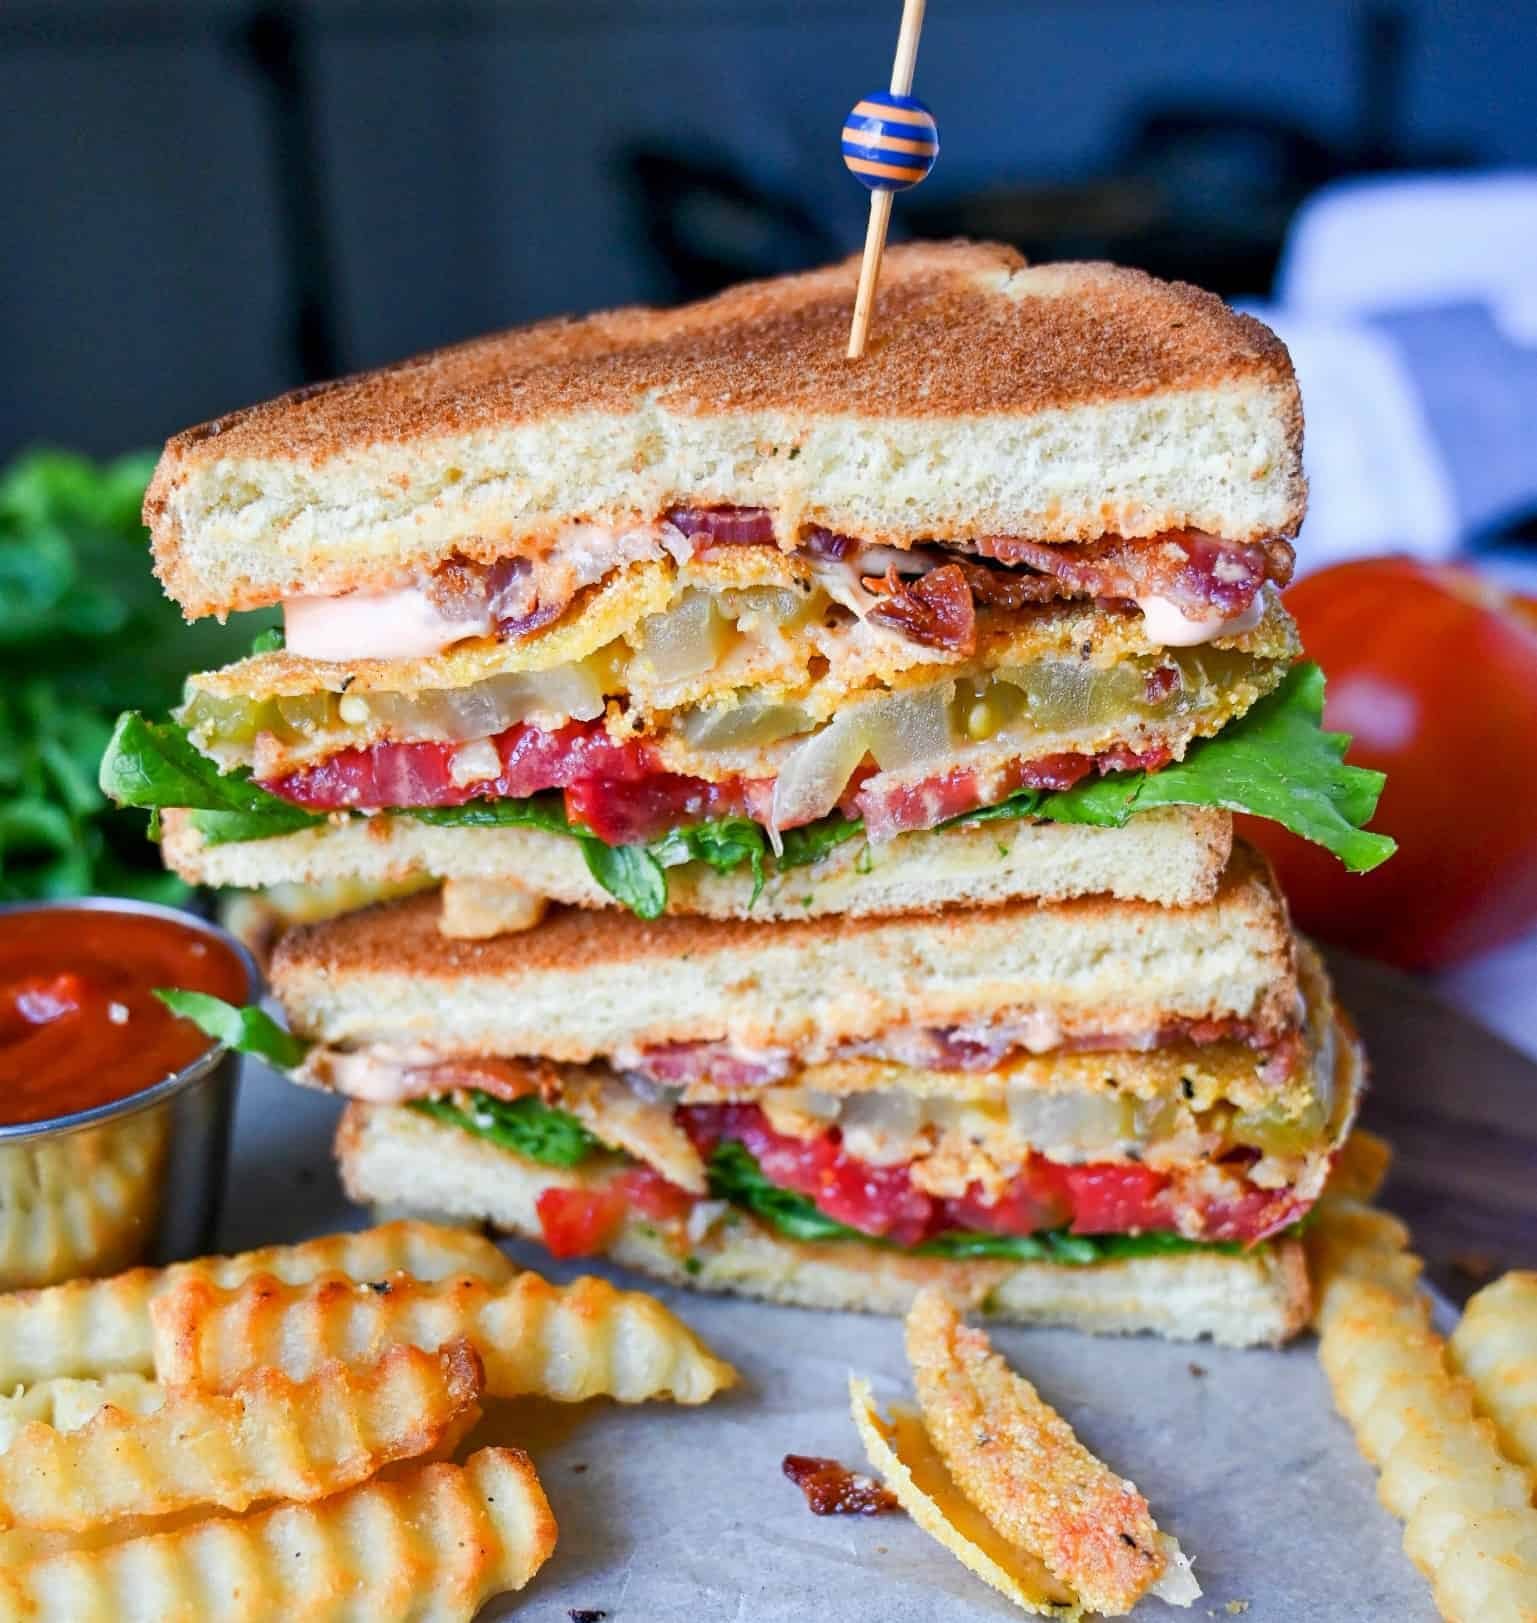 Fried green tomato sandwich cut in half and stacked on top of each other. With french fries and ketchup on the side.